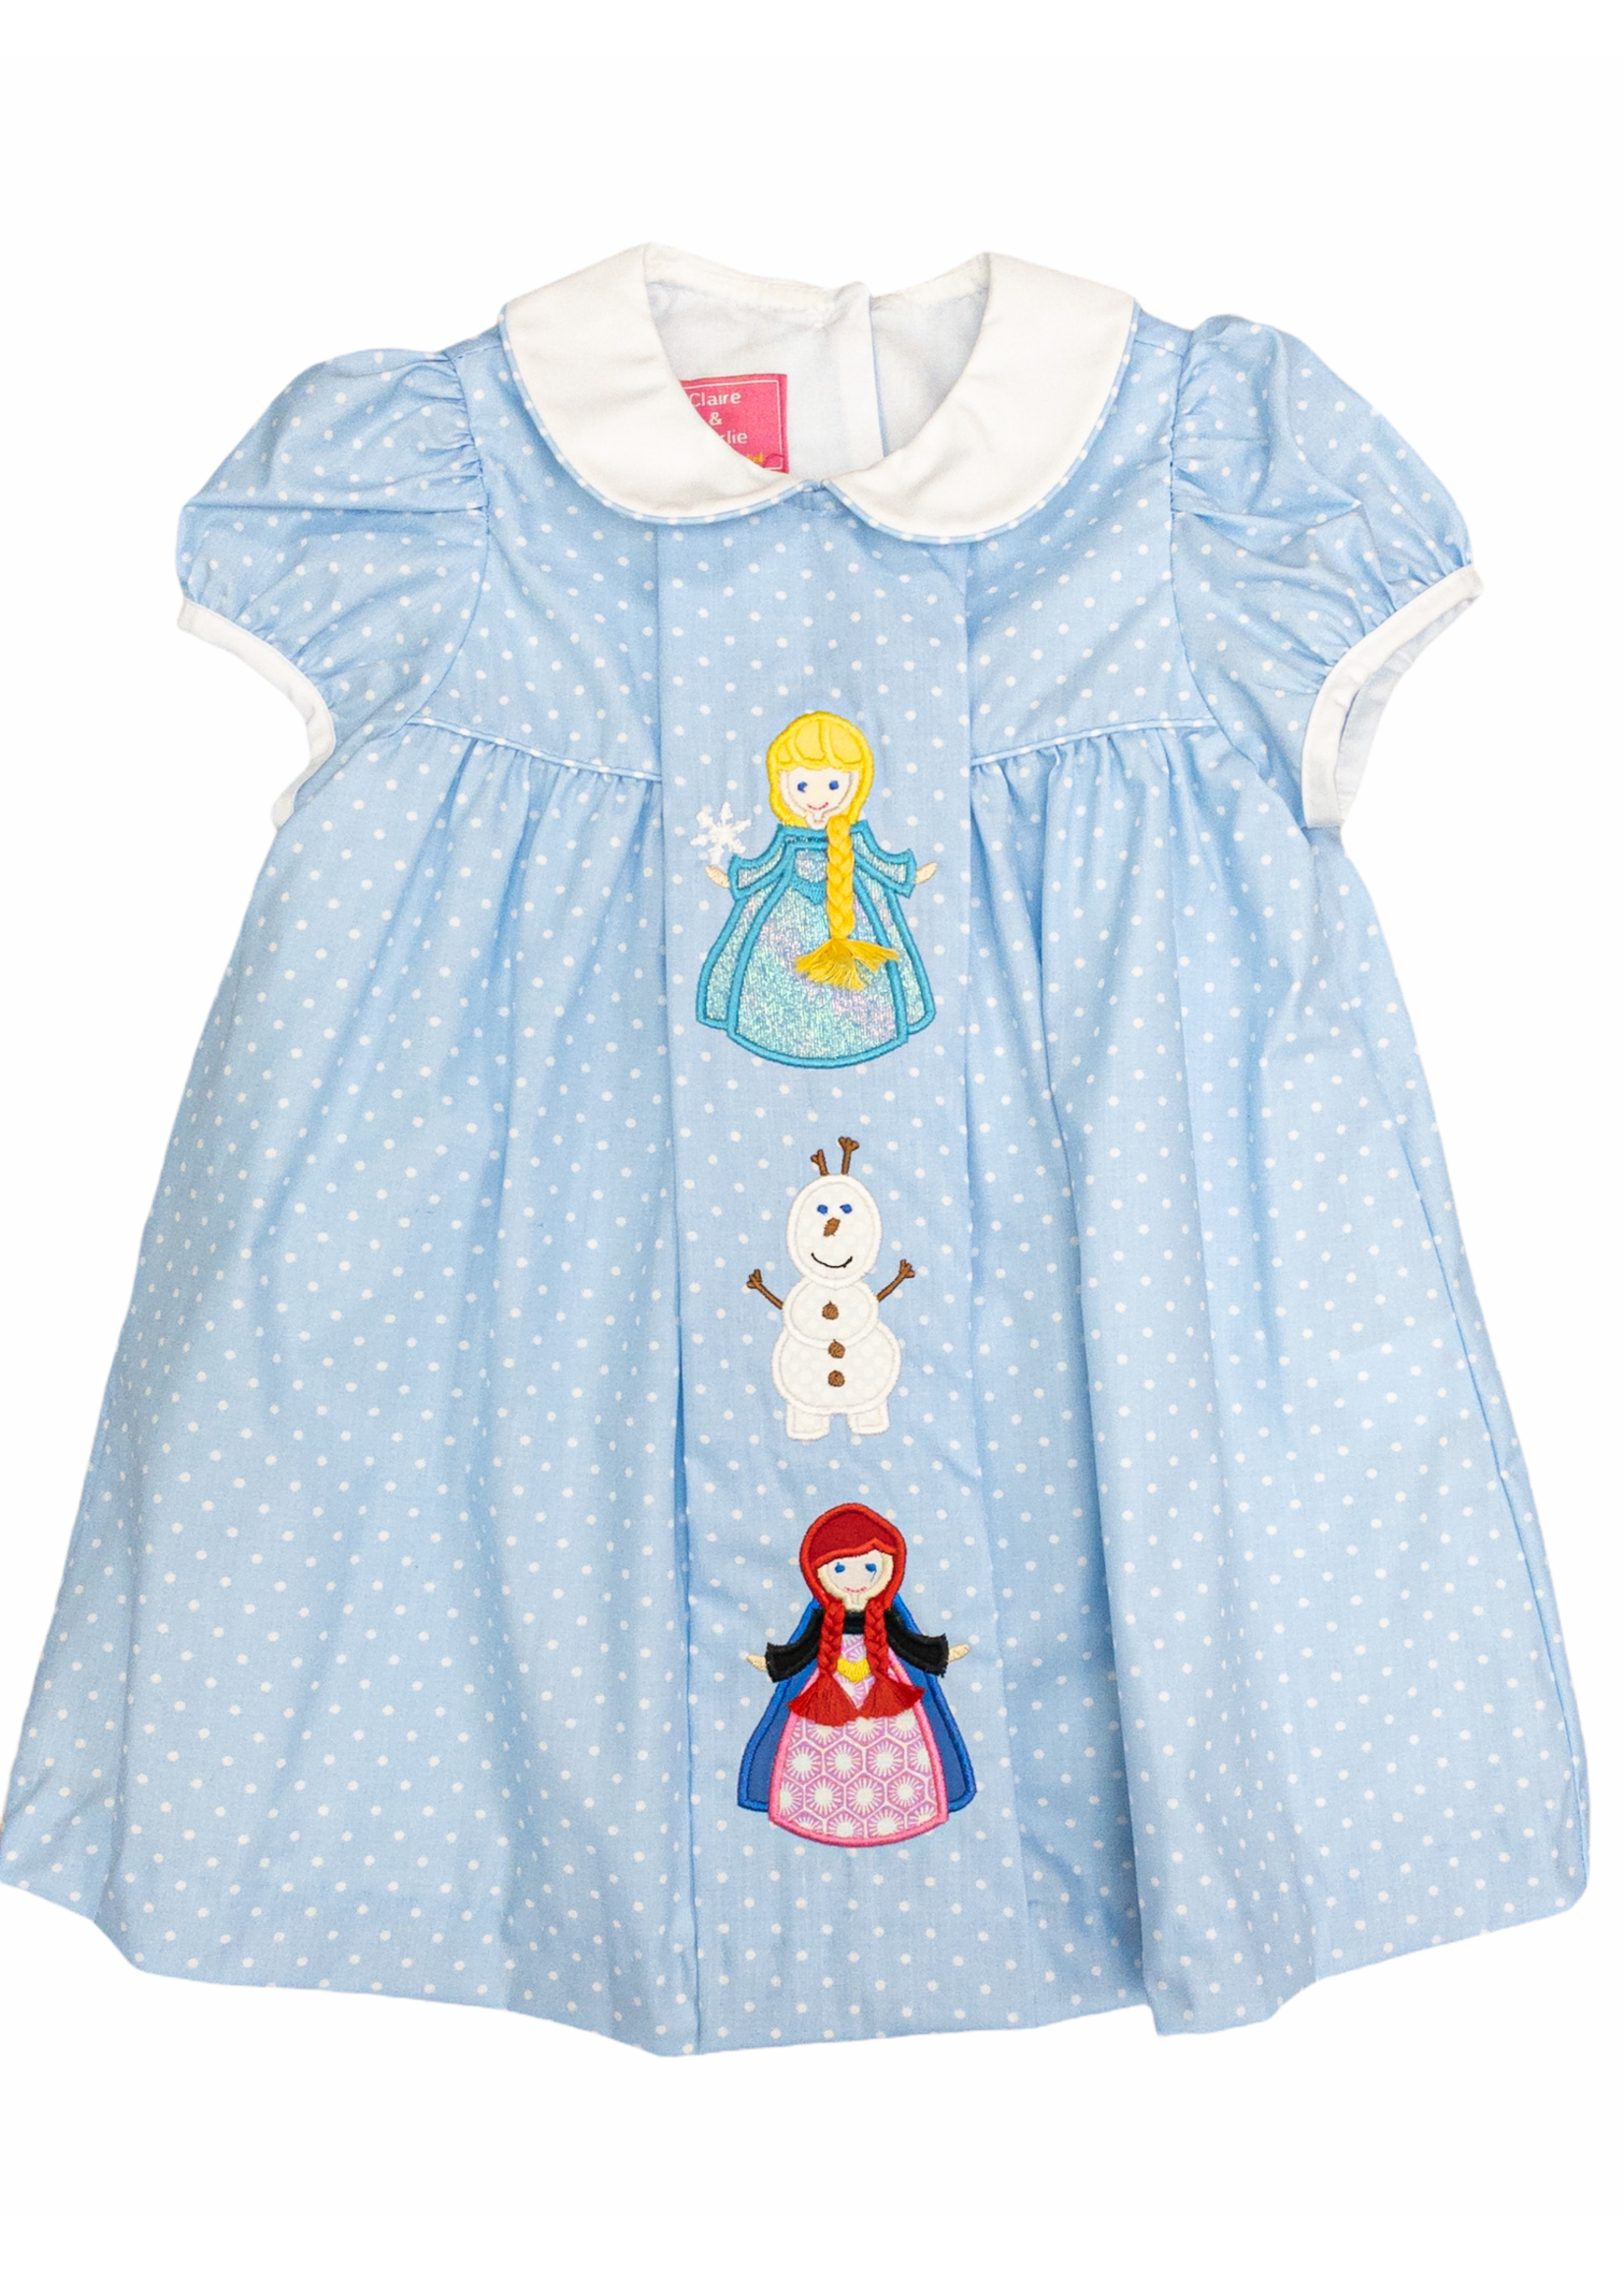 Claire and Charlie Ice Princess Float Dress W/ White Collar LT Blue W/ Dots